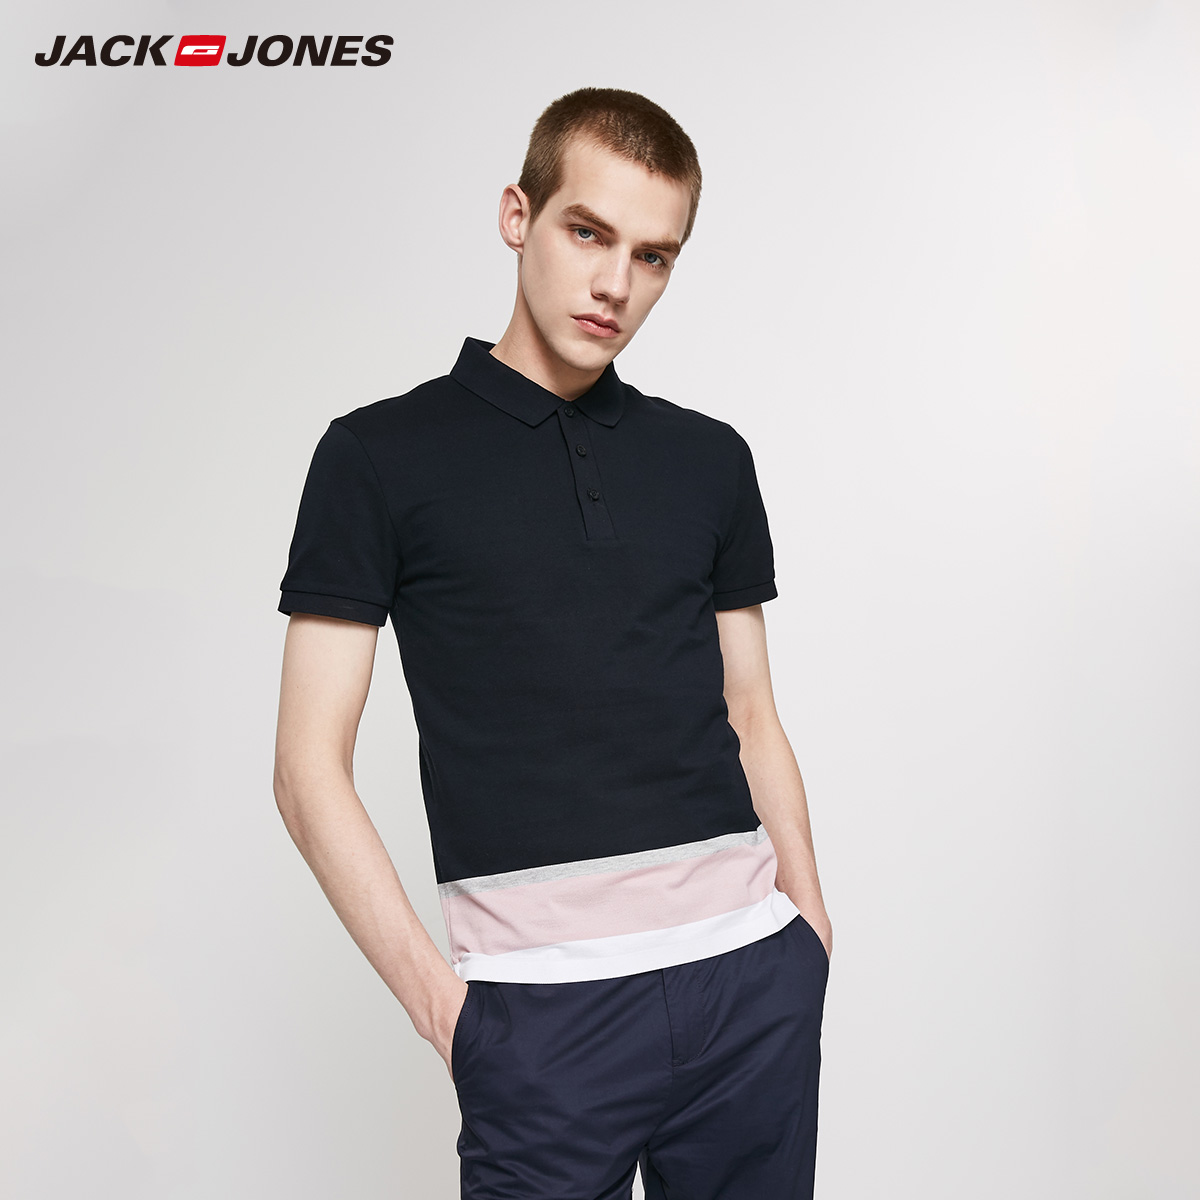 JackJones Men's Slim Fit 100% Cotton Contrasting Stripe Turn-down Collar Short-sleeved T-shirt|Basic 219206508